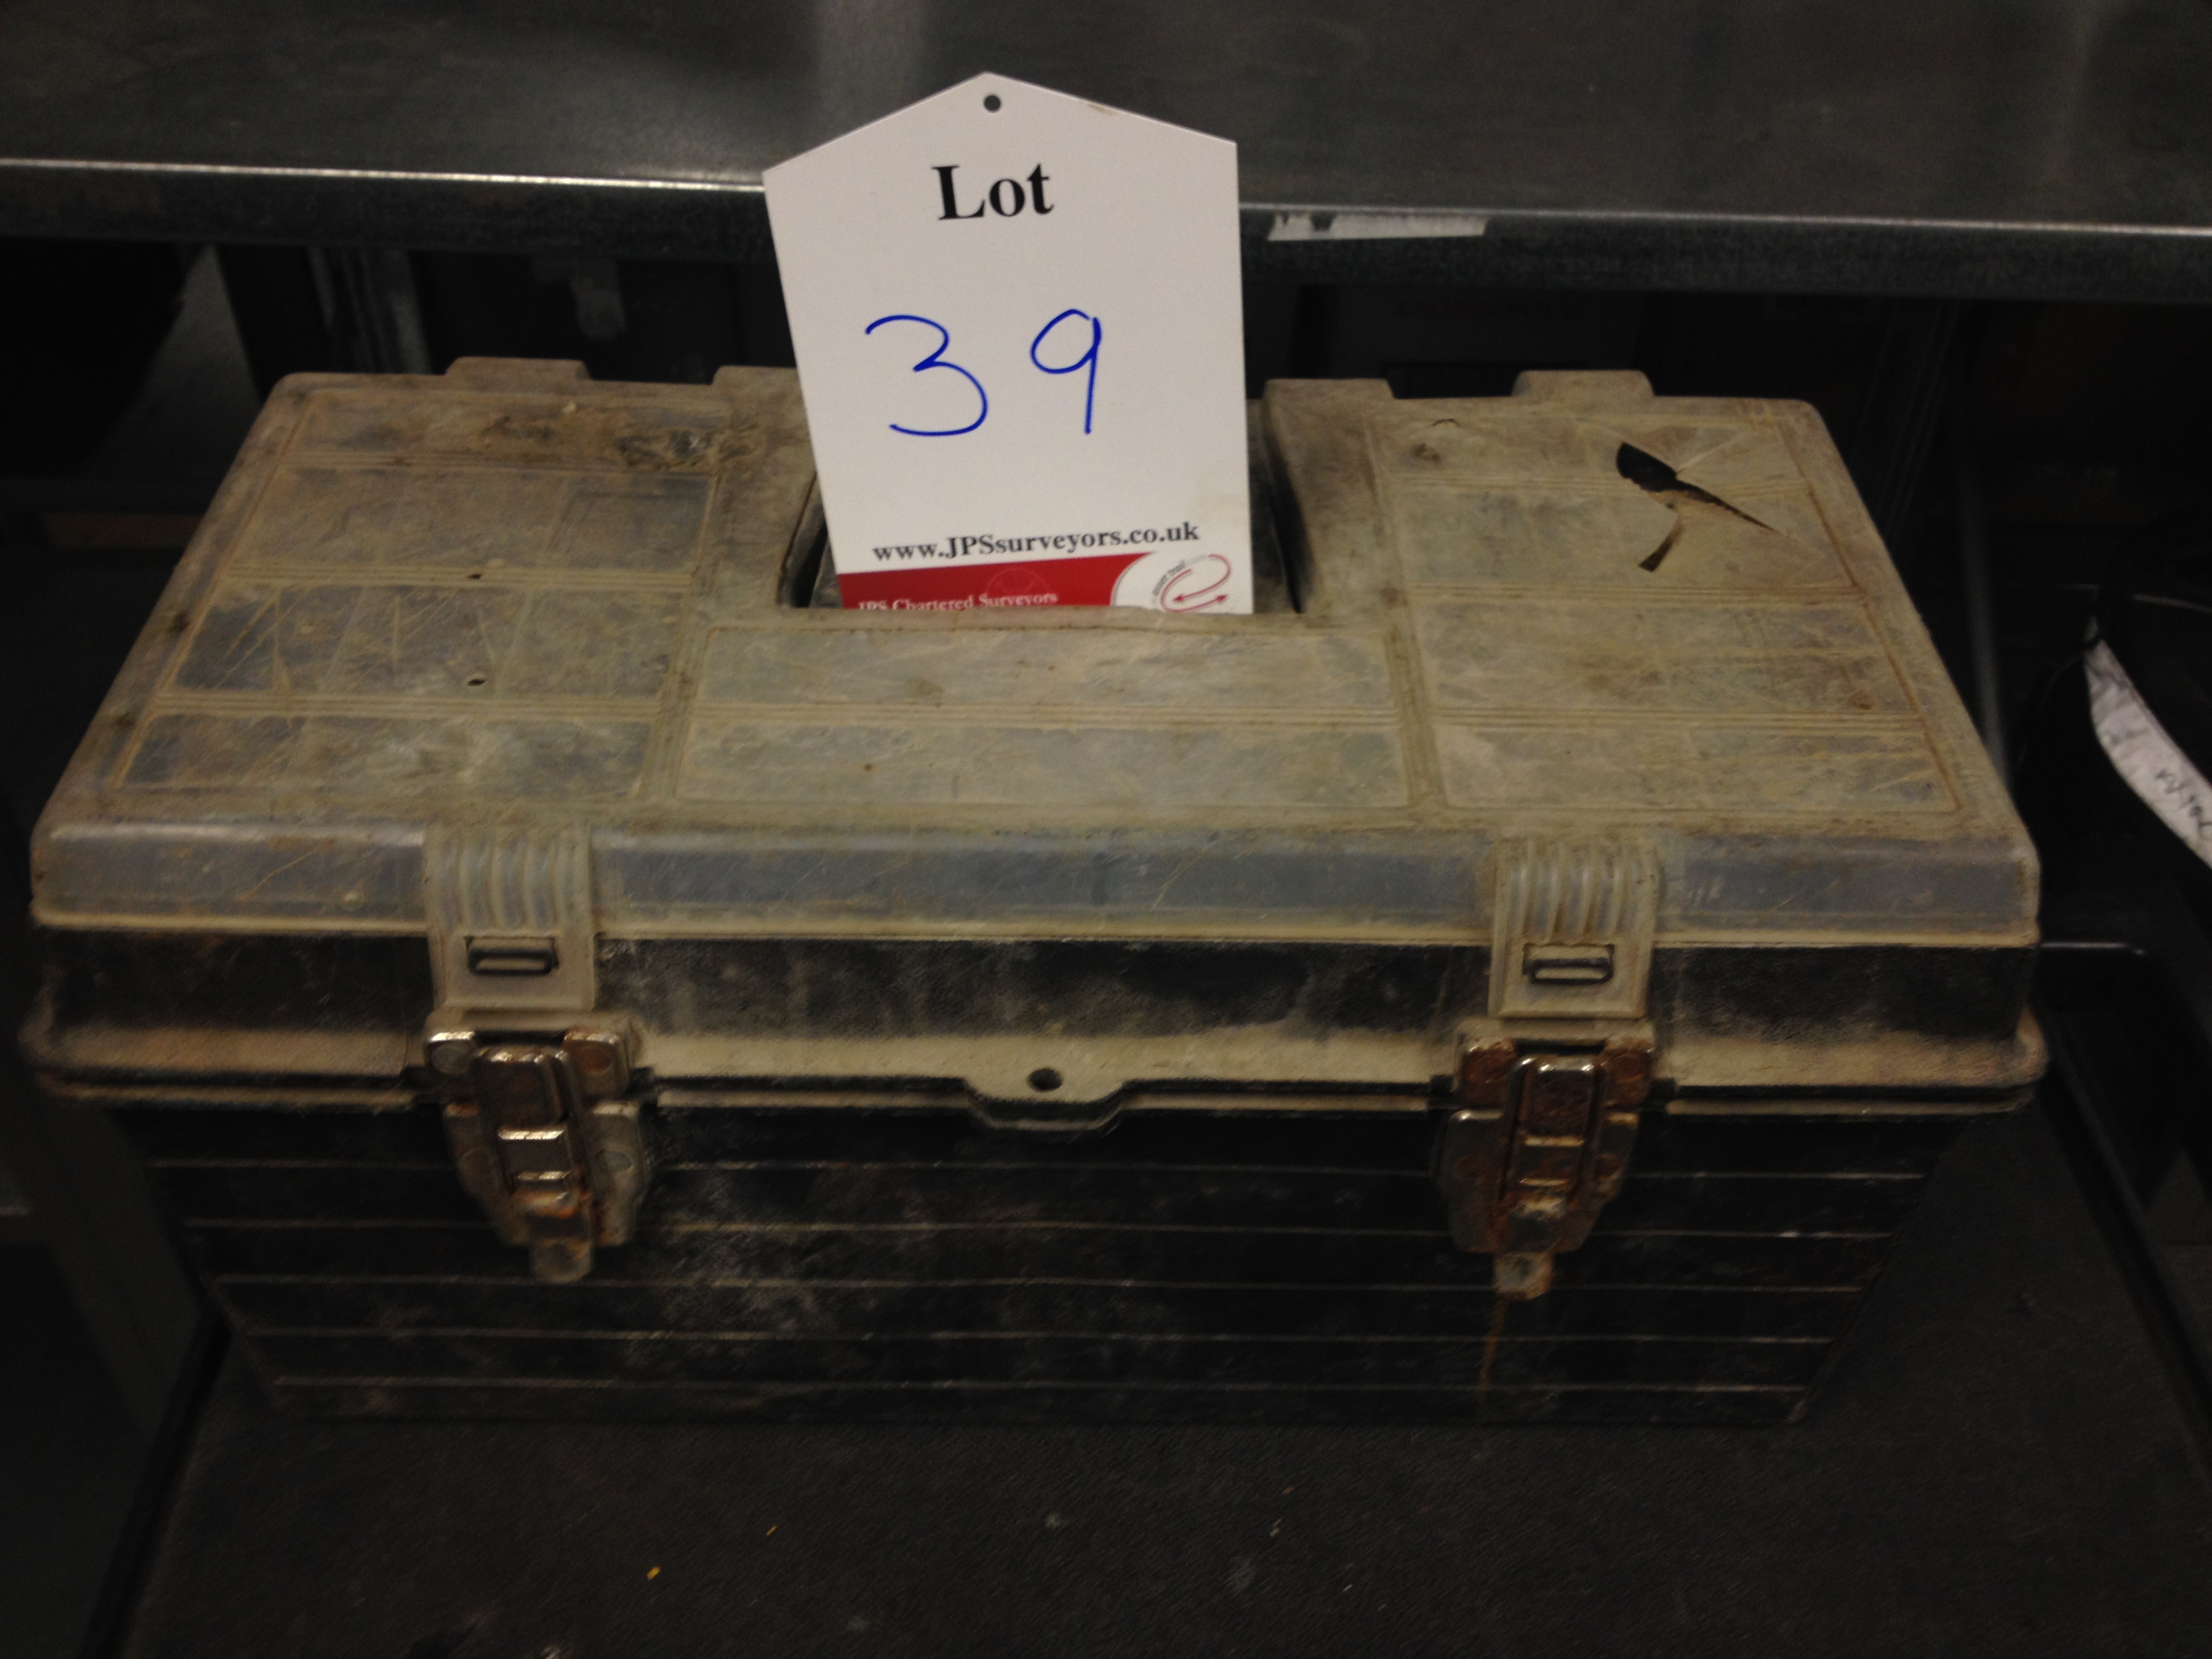 3 x Tool Boxes with Various tools and accessories - SEE PICTURE FOR FULL CONTENTS - Image 6 of 8